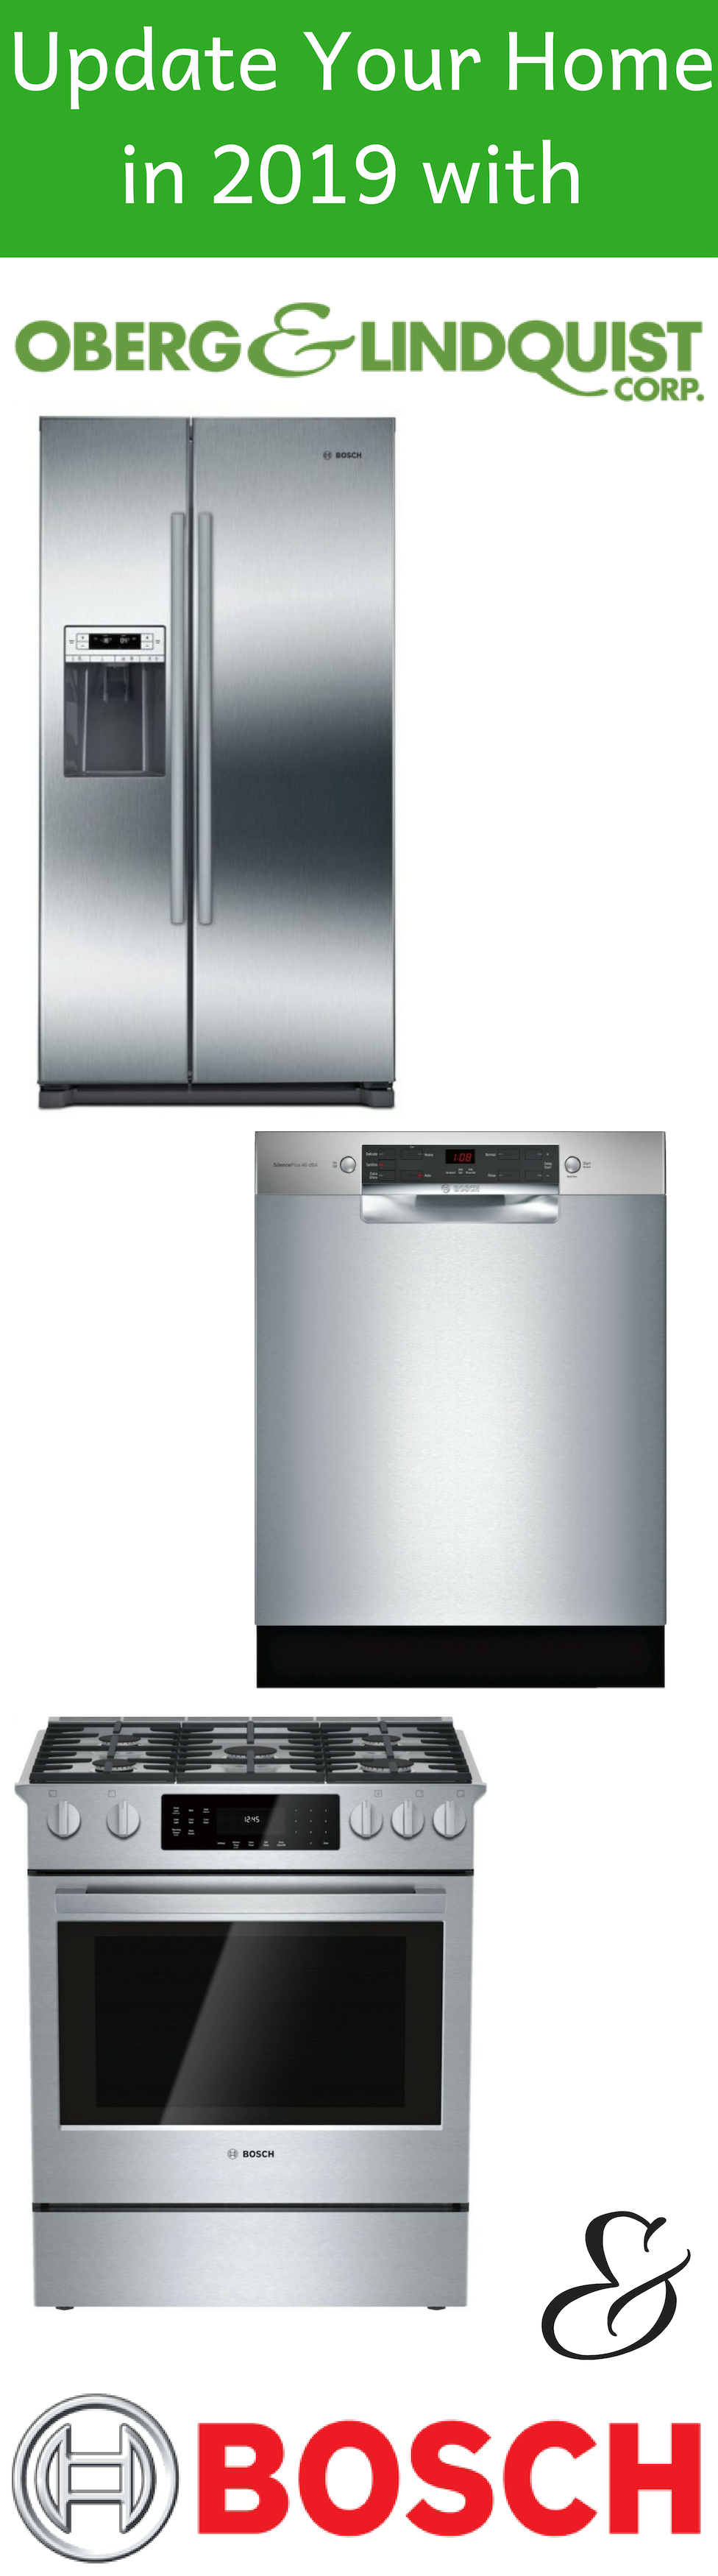 2019 Is The Year To Update Your Home Let The Remodeling Begin Bosch Appliances Are A Great W Kitchen Aid Appliances Vintage Appliances Appliances Storage